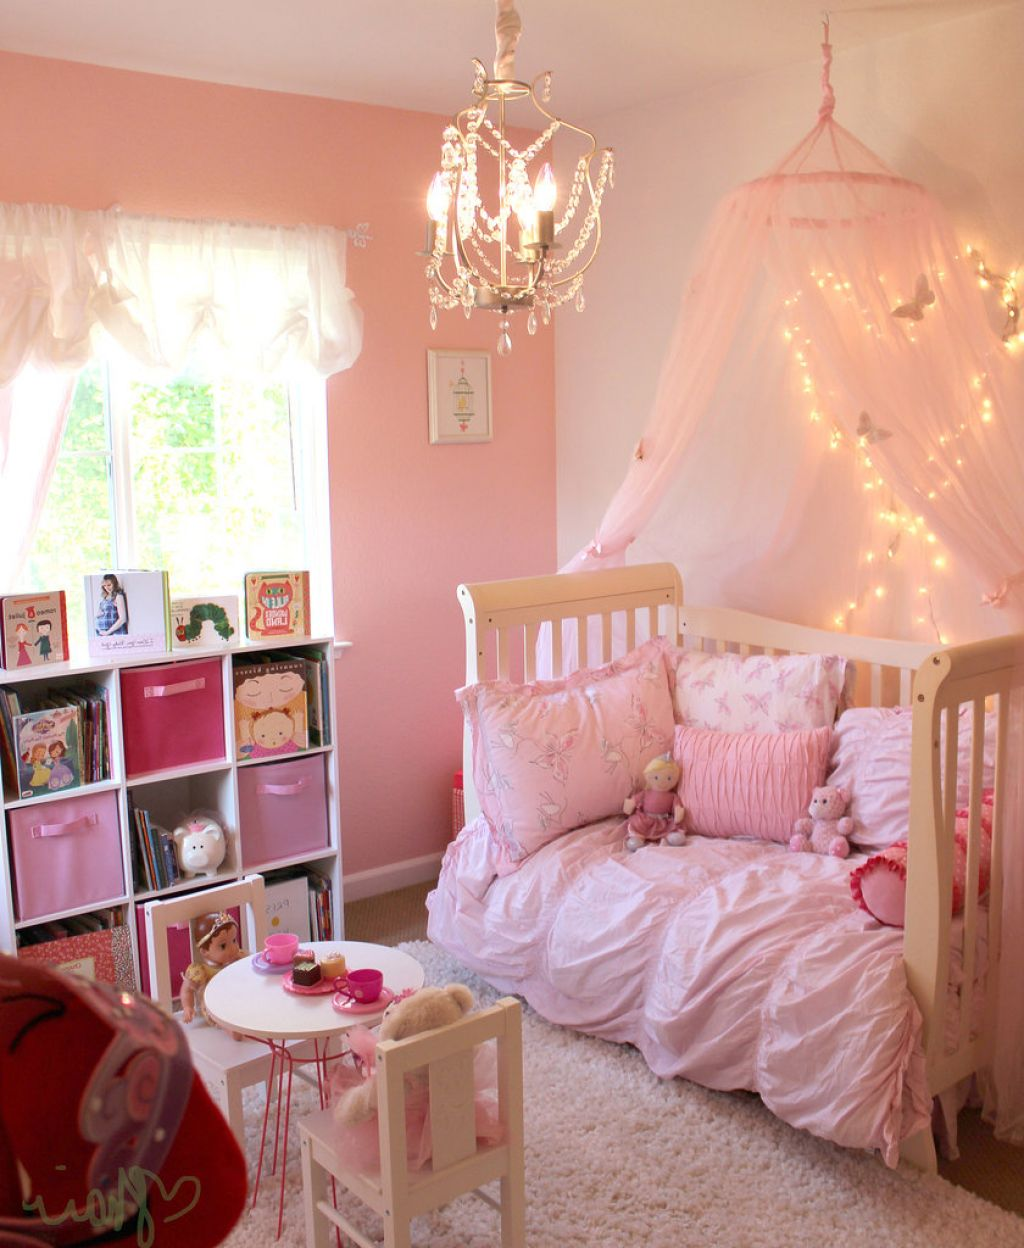 Interior Design Elegant Pink White Gray Baby Girl Room: 32 Dreamy Bedroom Designs For Your Little Princess